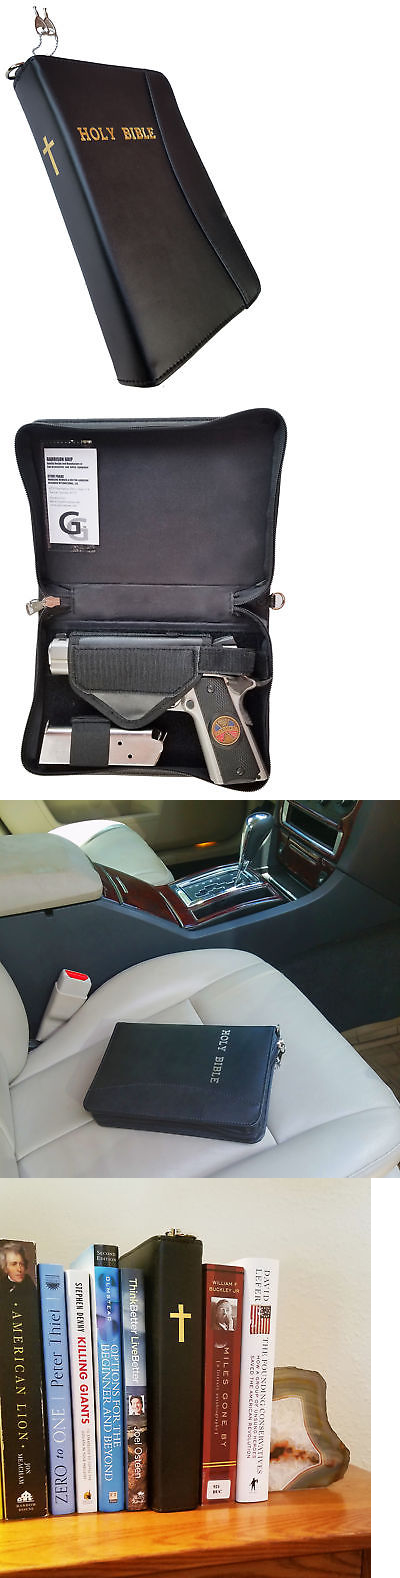 Cases 73938 Leather Concealed Carry Or Bookshelf Bible Gun